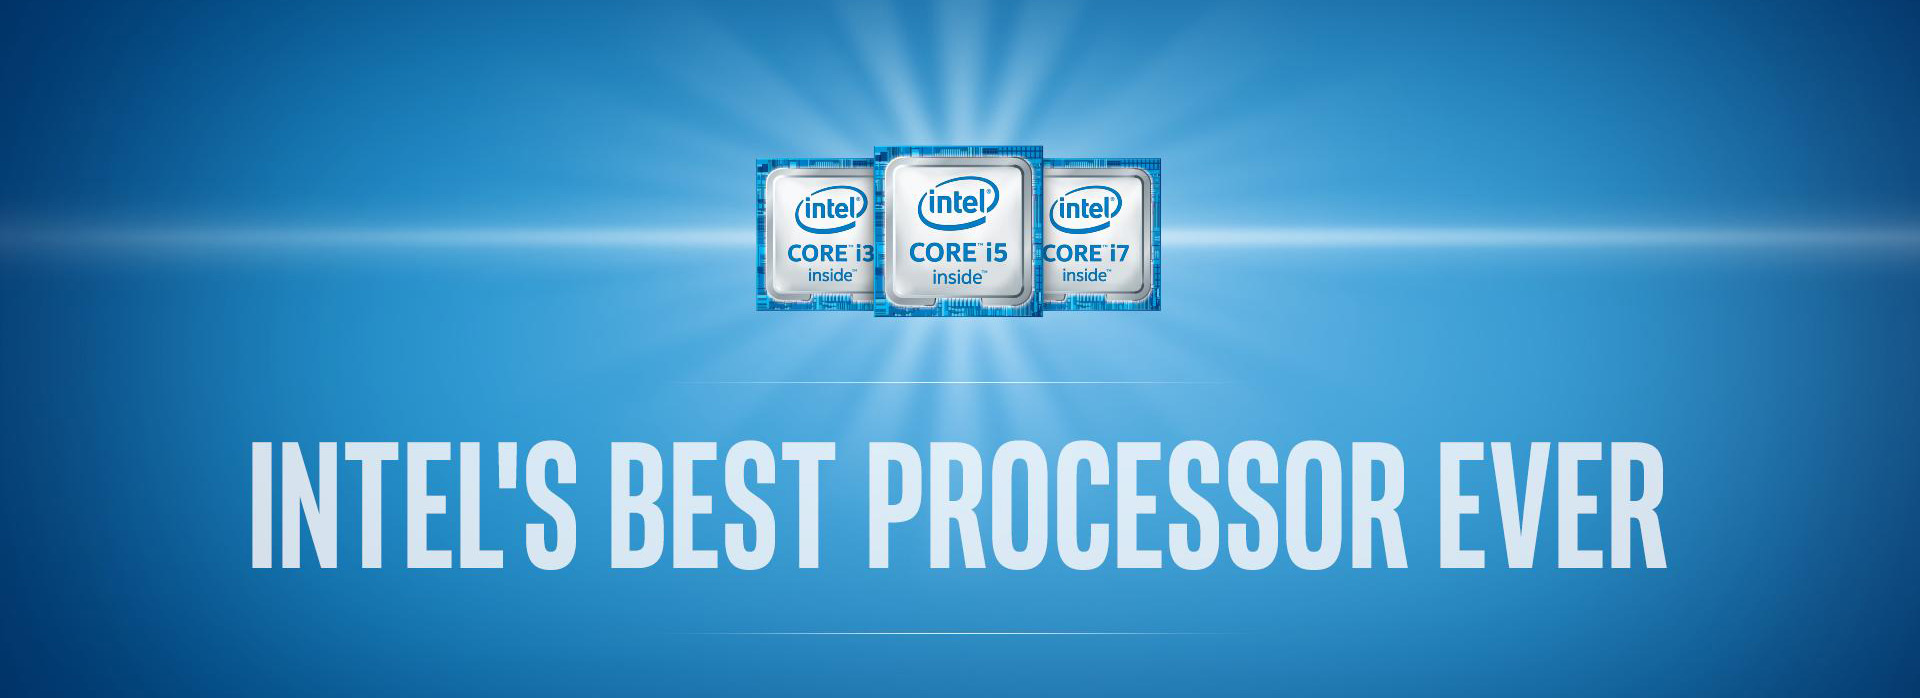 Intel's Best Processor Ever